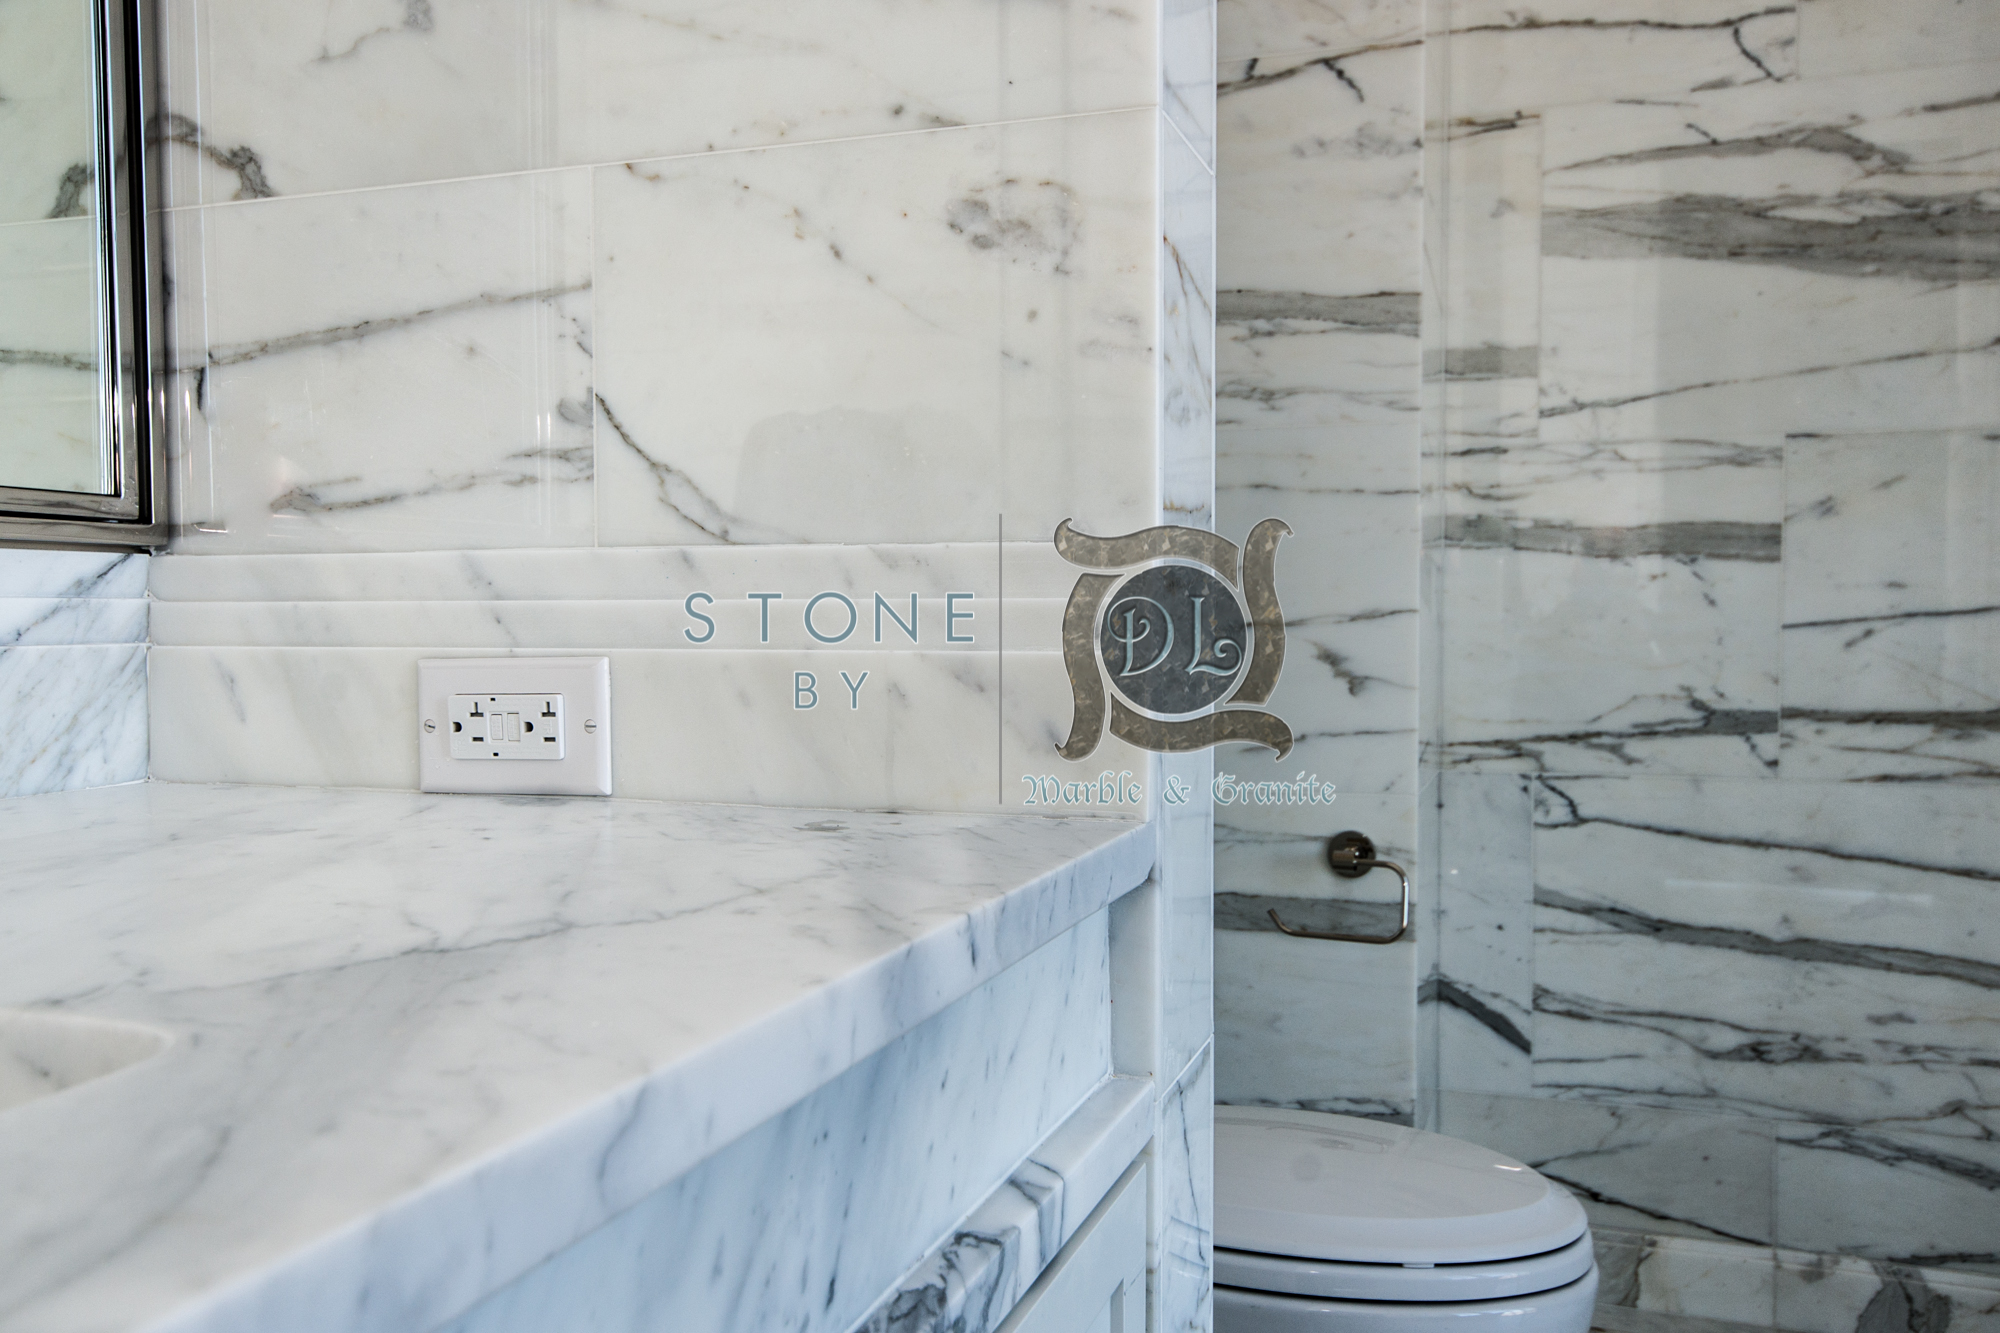 DSC_8094 - Stone by DL Marble and Granite Inc. Walker Tower.jpg